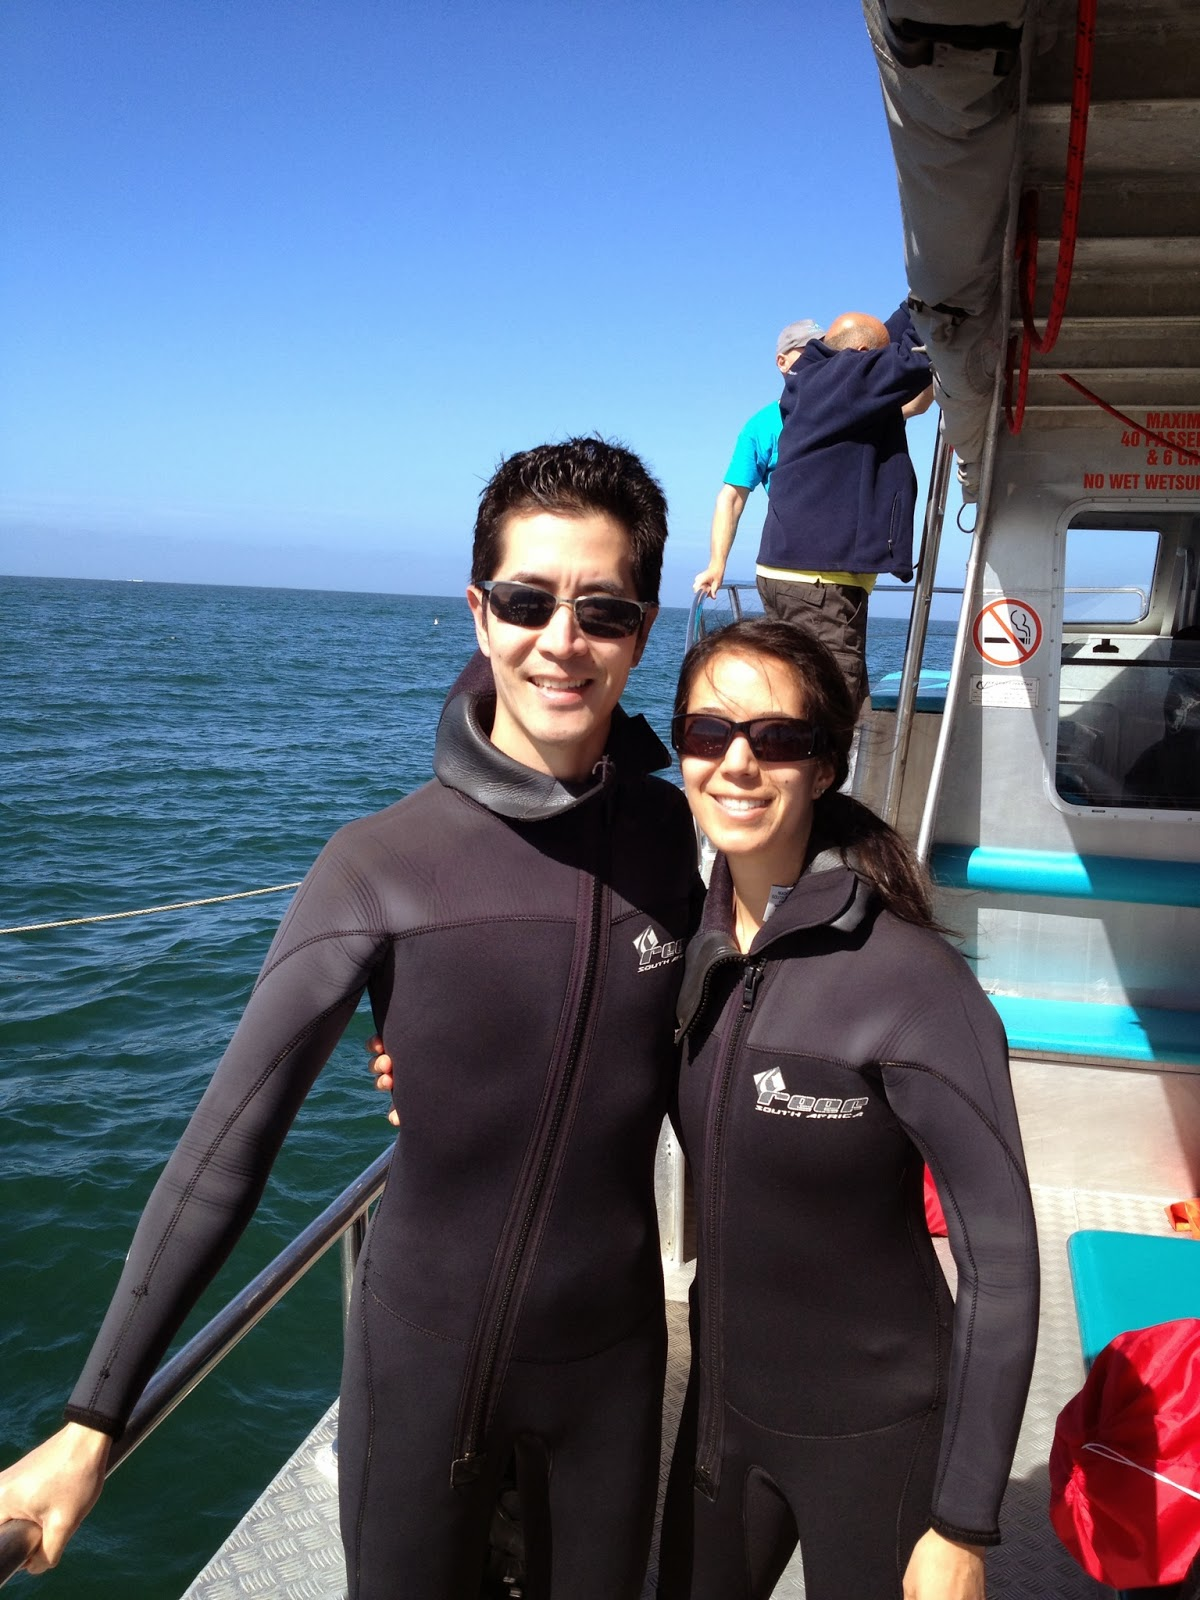 Kleinbaai - Getting suited up for our dive